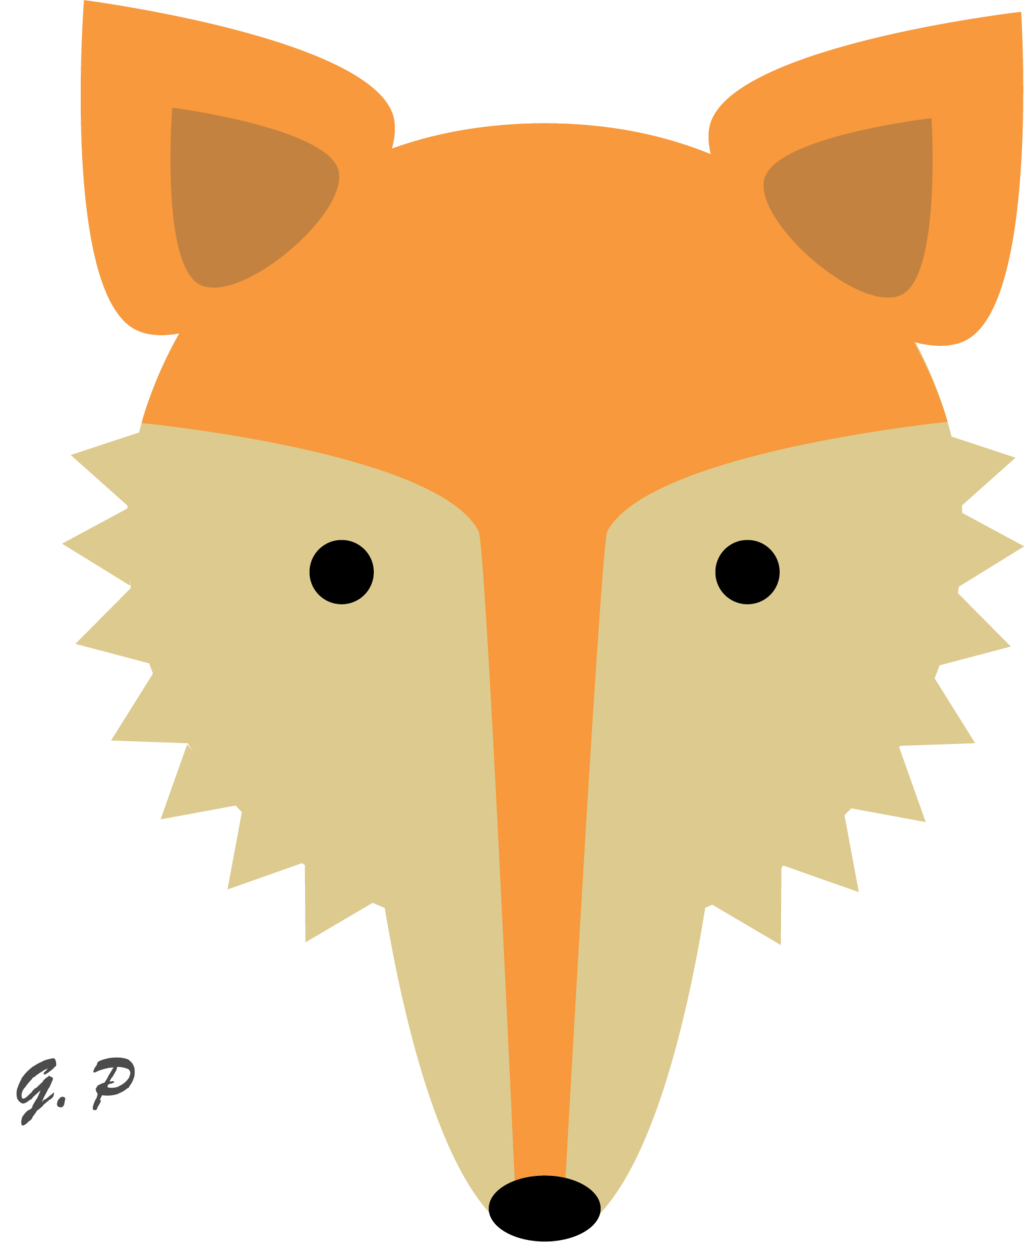 Free fox face cliparts. Hamster clipart simple